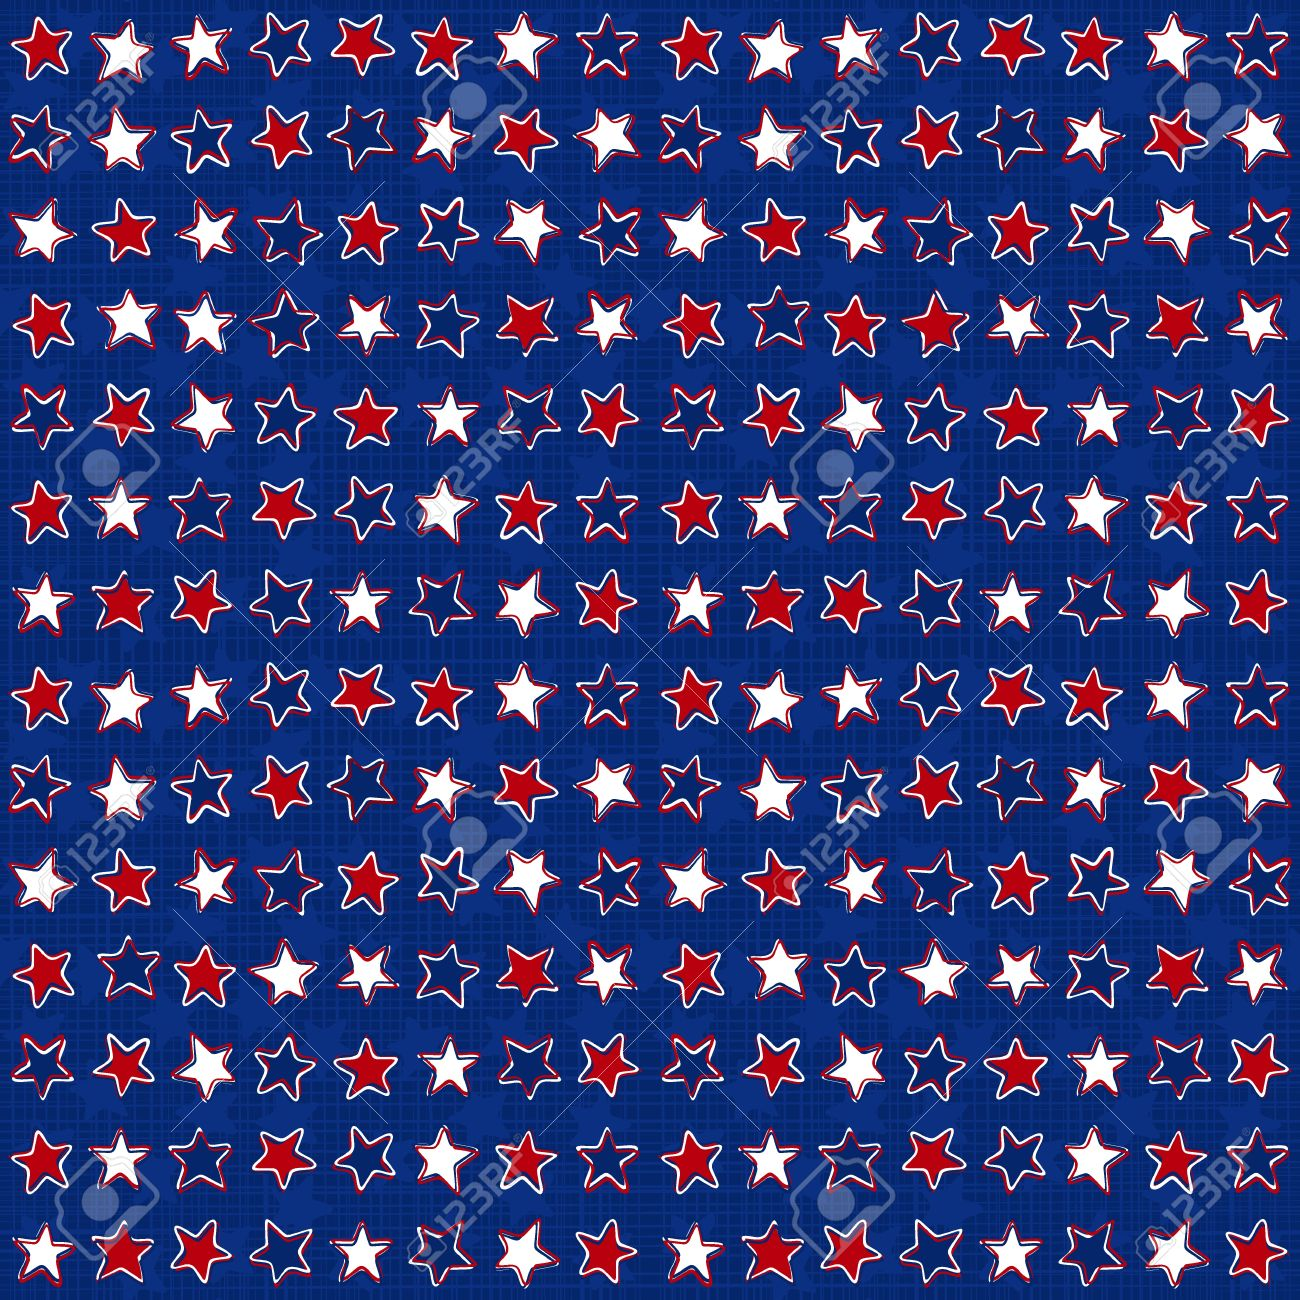 white red blue stars in messy horizontal rows on dark blue background royalty free cliparts vectors and stock illustration image 30876350 white red blue stars in messy horizontal rows on dark blue background